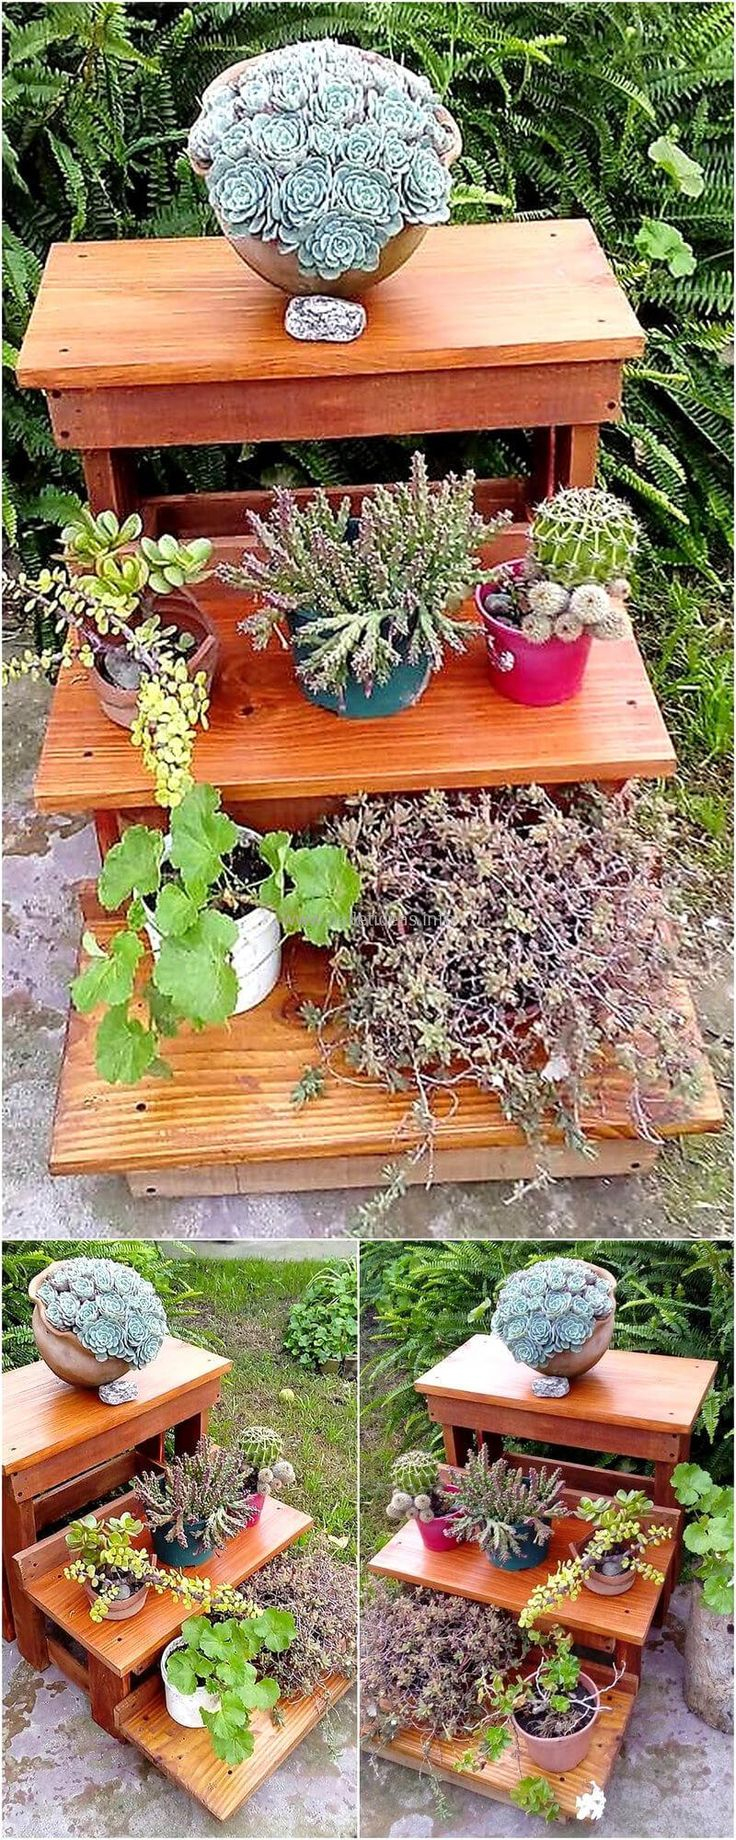 recycled wood pallet planter idea